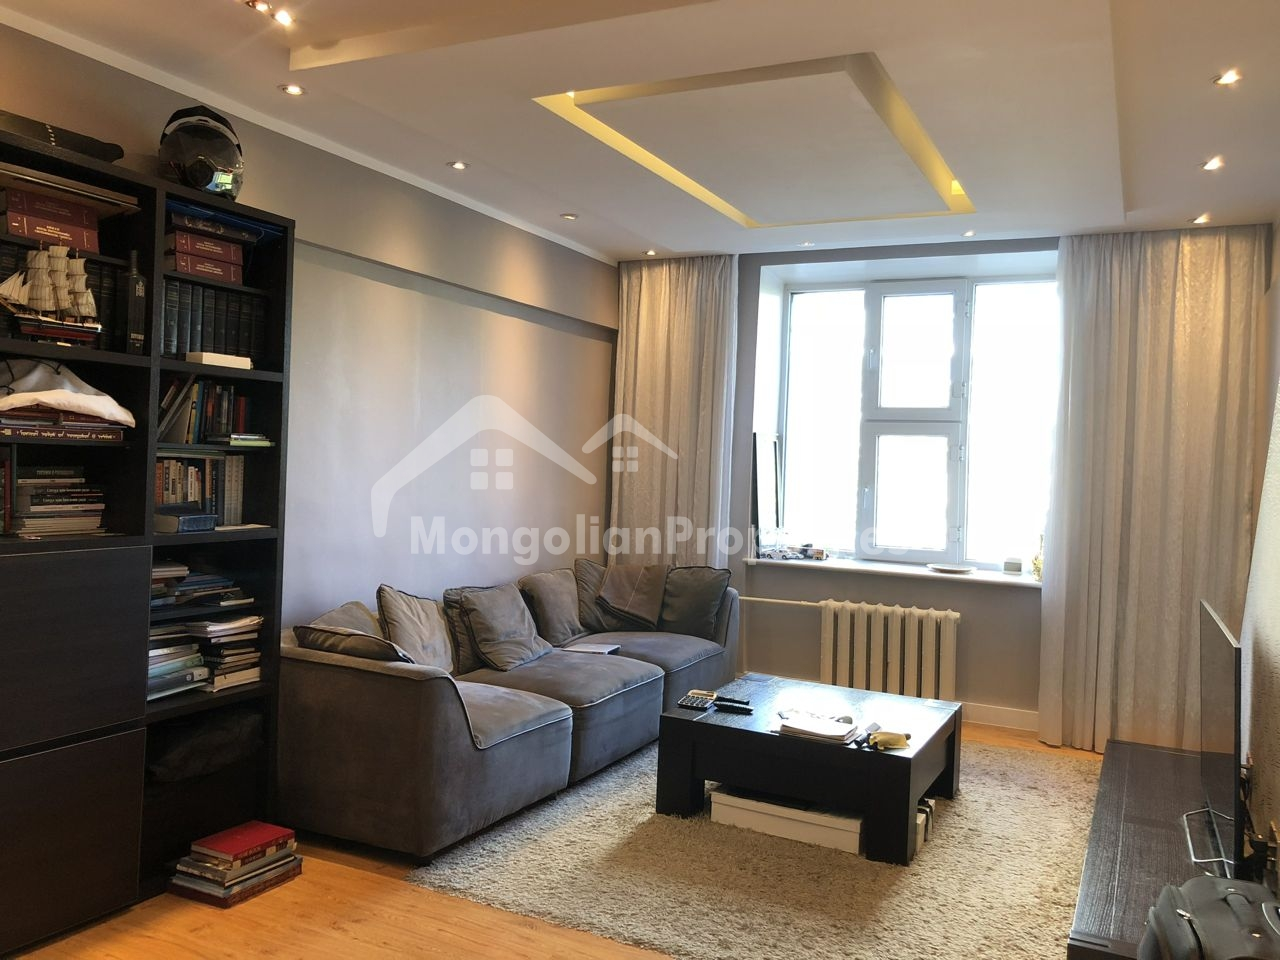 Renovated 1 bedroom apartment is for sale just next to the Russian Embassy